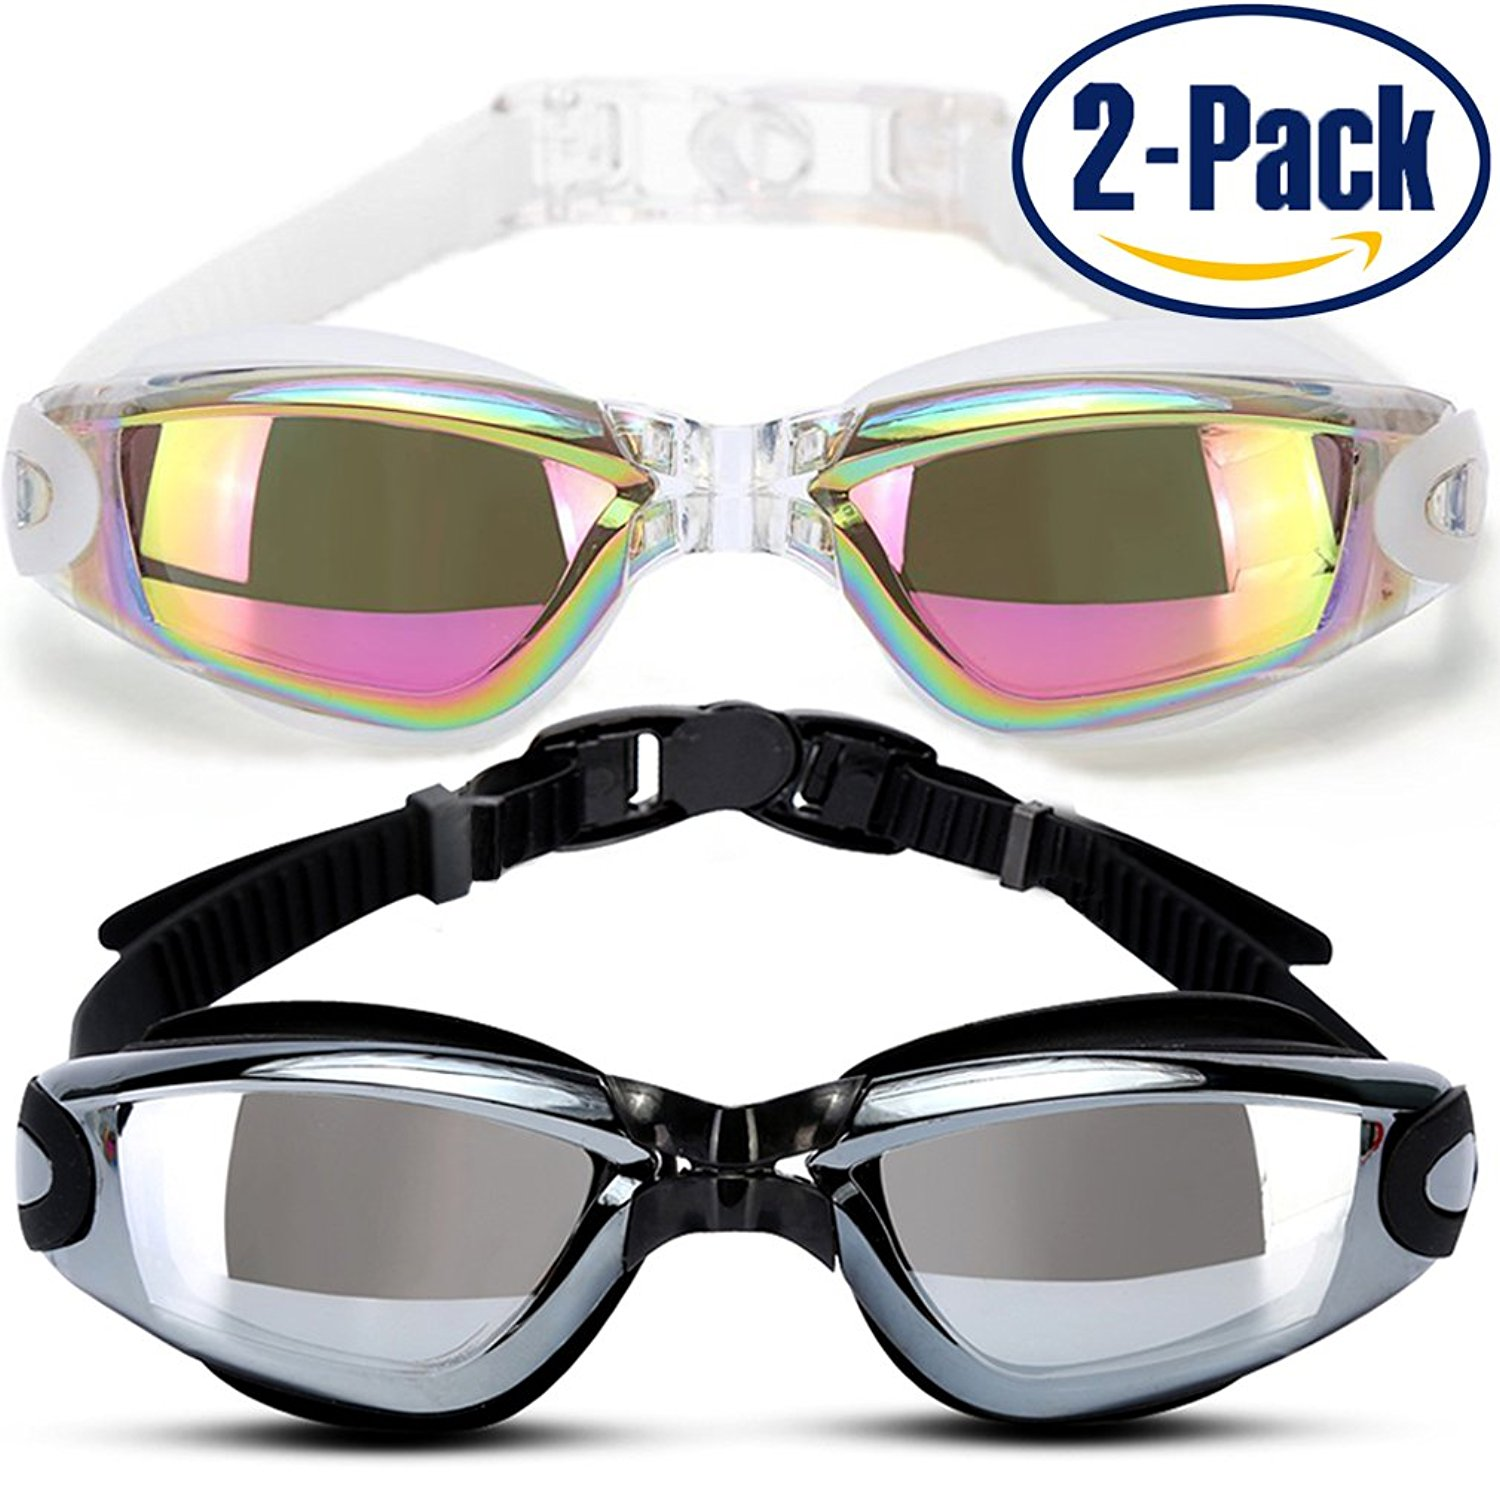 SPOLLK Swim Goggles,Pack Of 2,Swimming Goggles,No Leaking Anti Fog Water Goggles,Prevent Mist, UV Protection,Eye Protect For Swimming Adult Youth Men Women Black White by